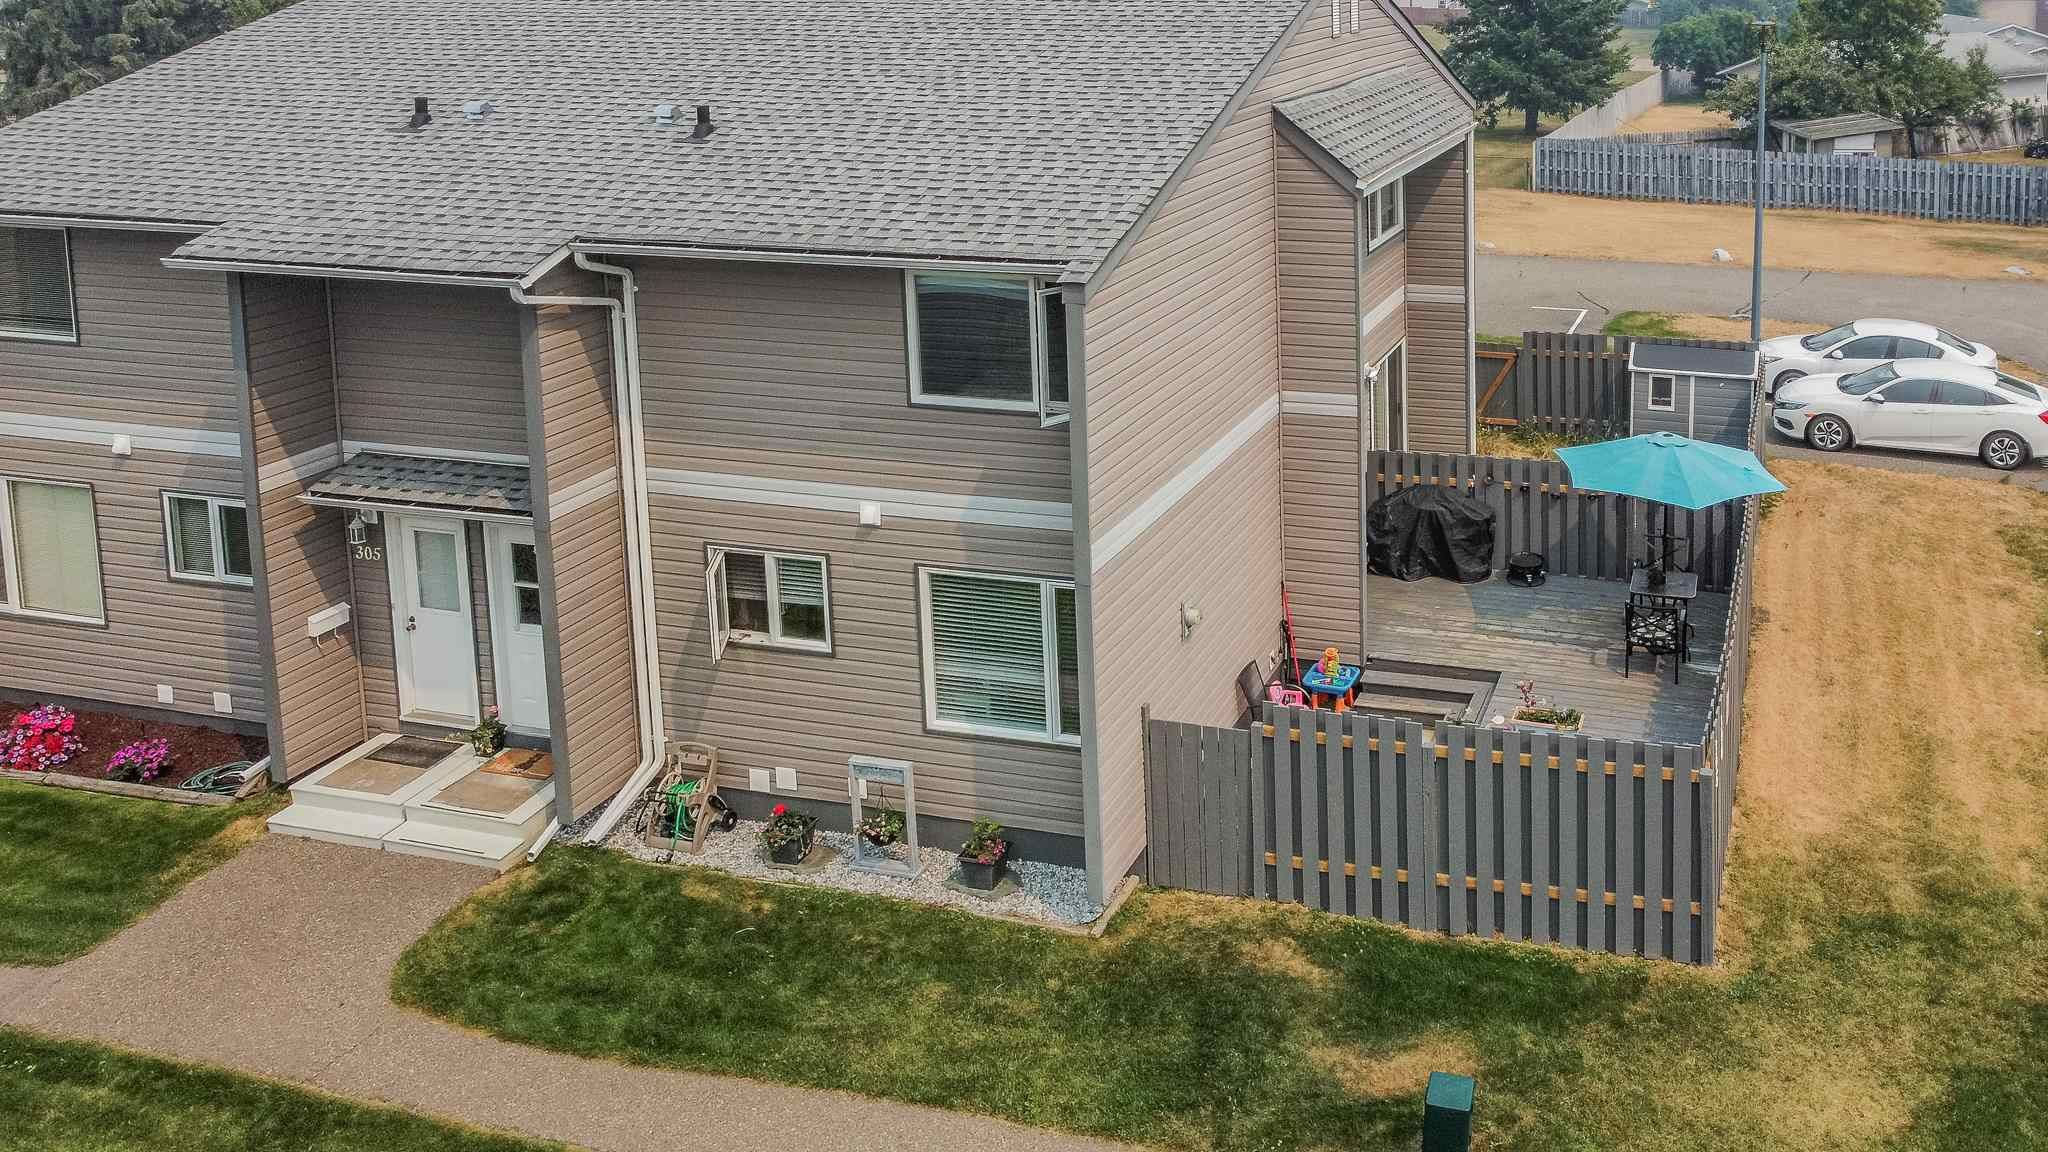 Main Photo: 306 2550 S OSPIKA Boulevard in Prince George: Carter Light Townhouse for sale (PG City West (Zone 71))  : MLS®# R2602308